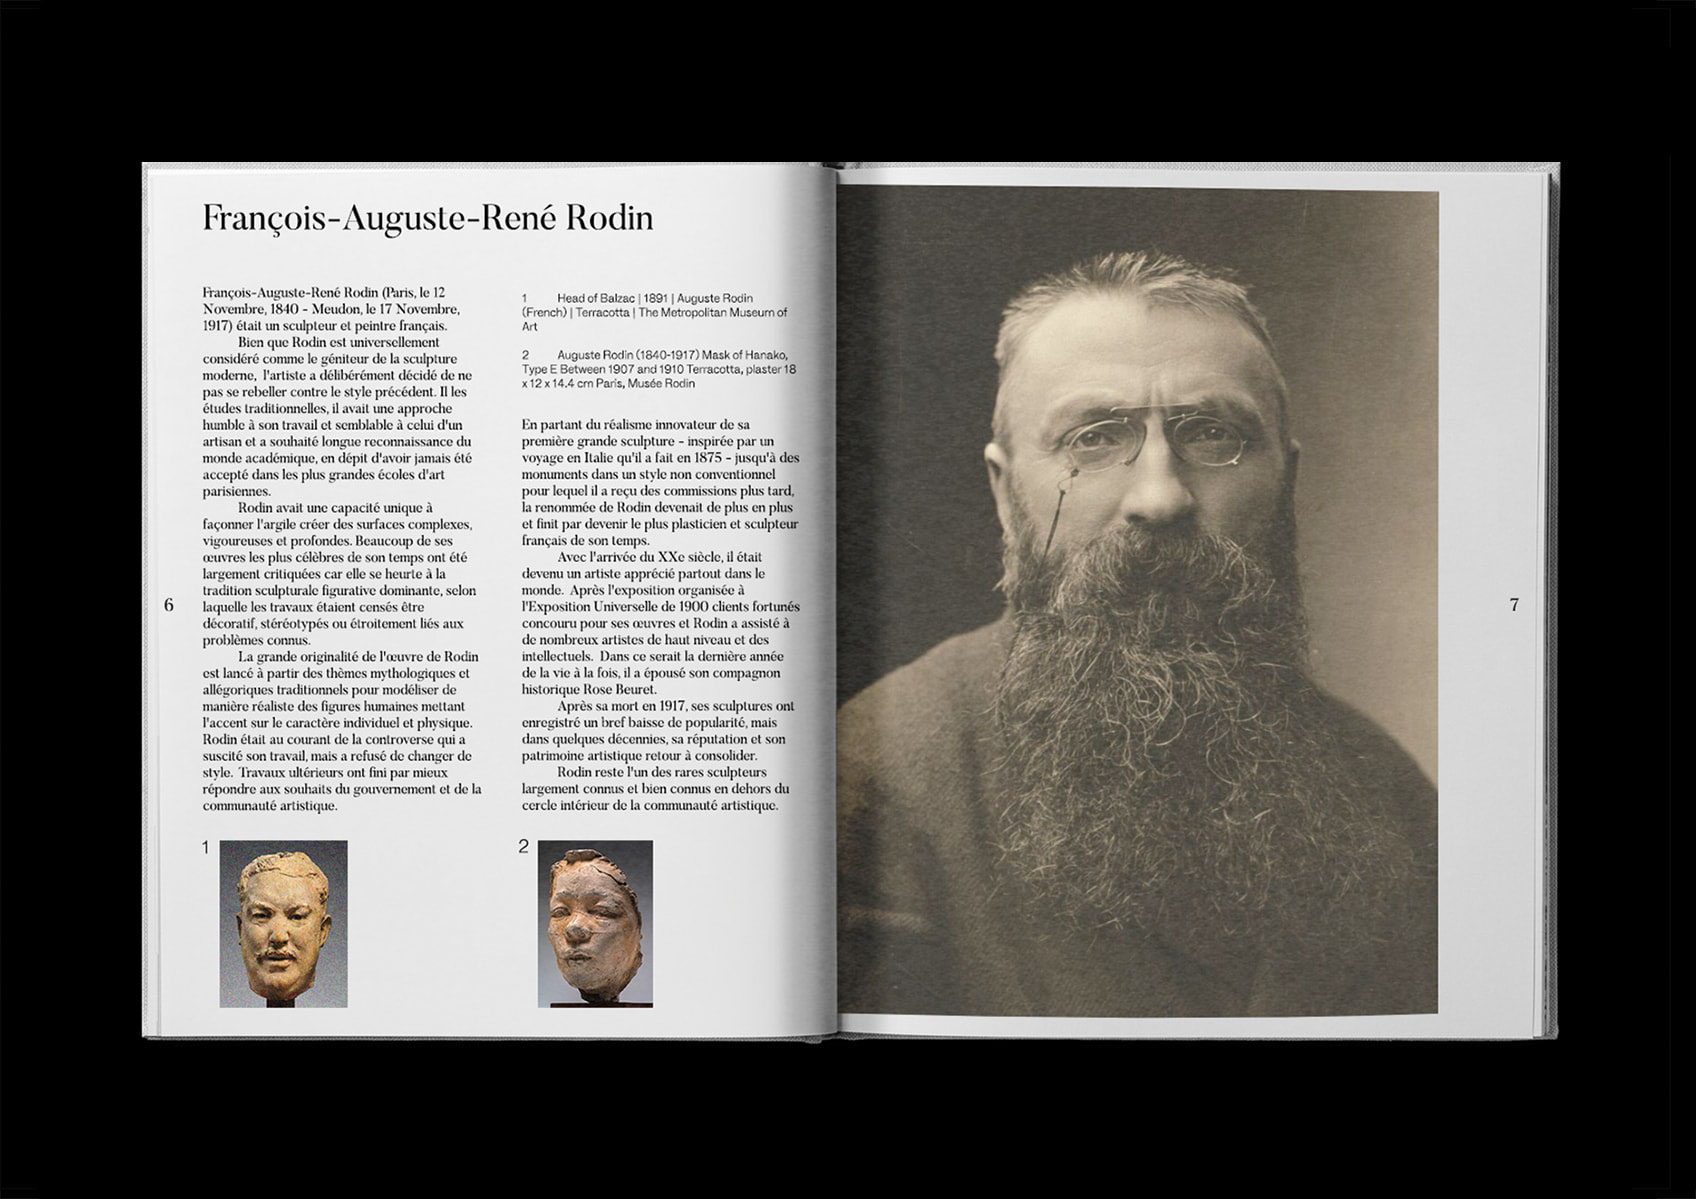 life timeline of auguste rodin essay Read this biographies essay and over 88,000 other research documents auguste rodin auguste rodin was born in 1840 and died in 1917, a year before the end of world war i.